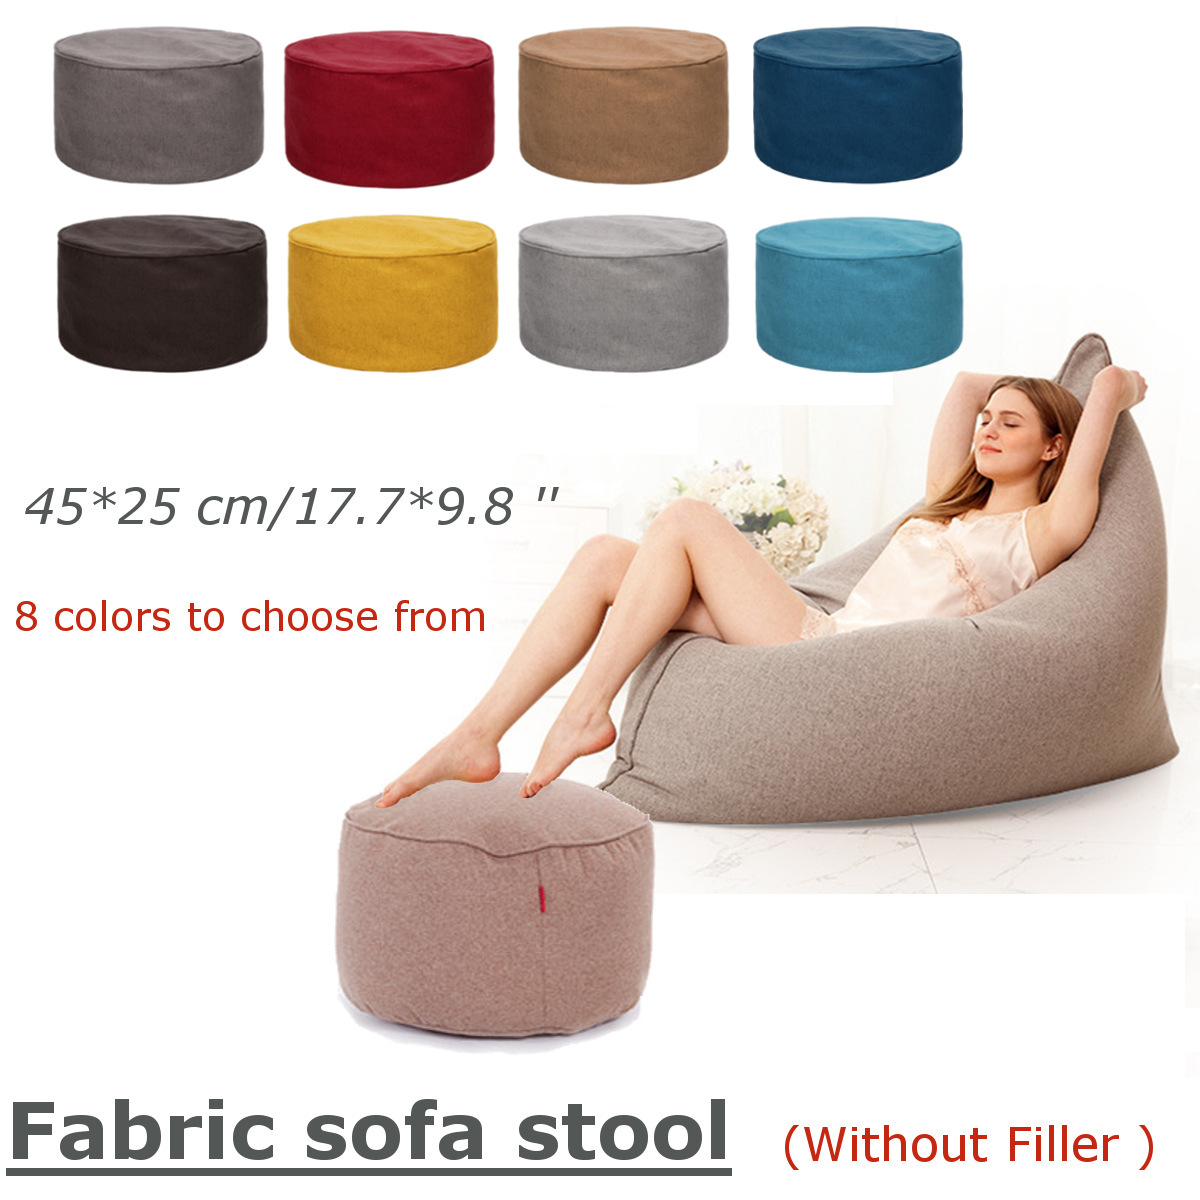 8 Colors Cotton Stool Cover Home Sofa Round Footstool Soft Bean Bags Sofa Lounger Washable Without Filler For Living Room Table